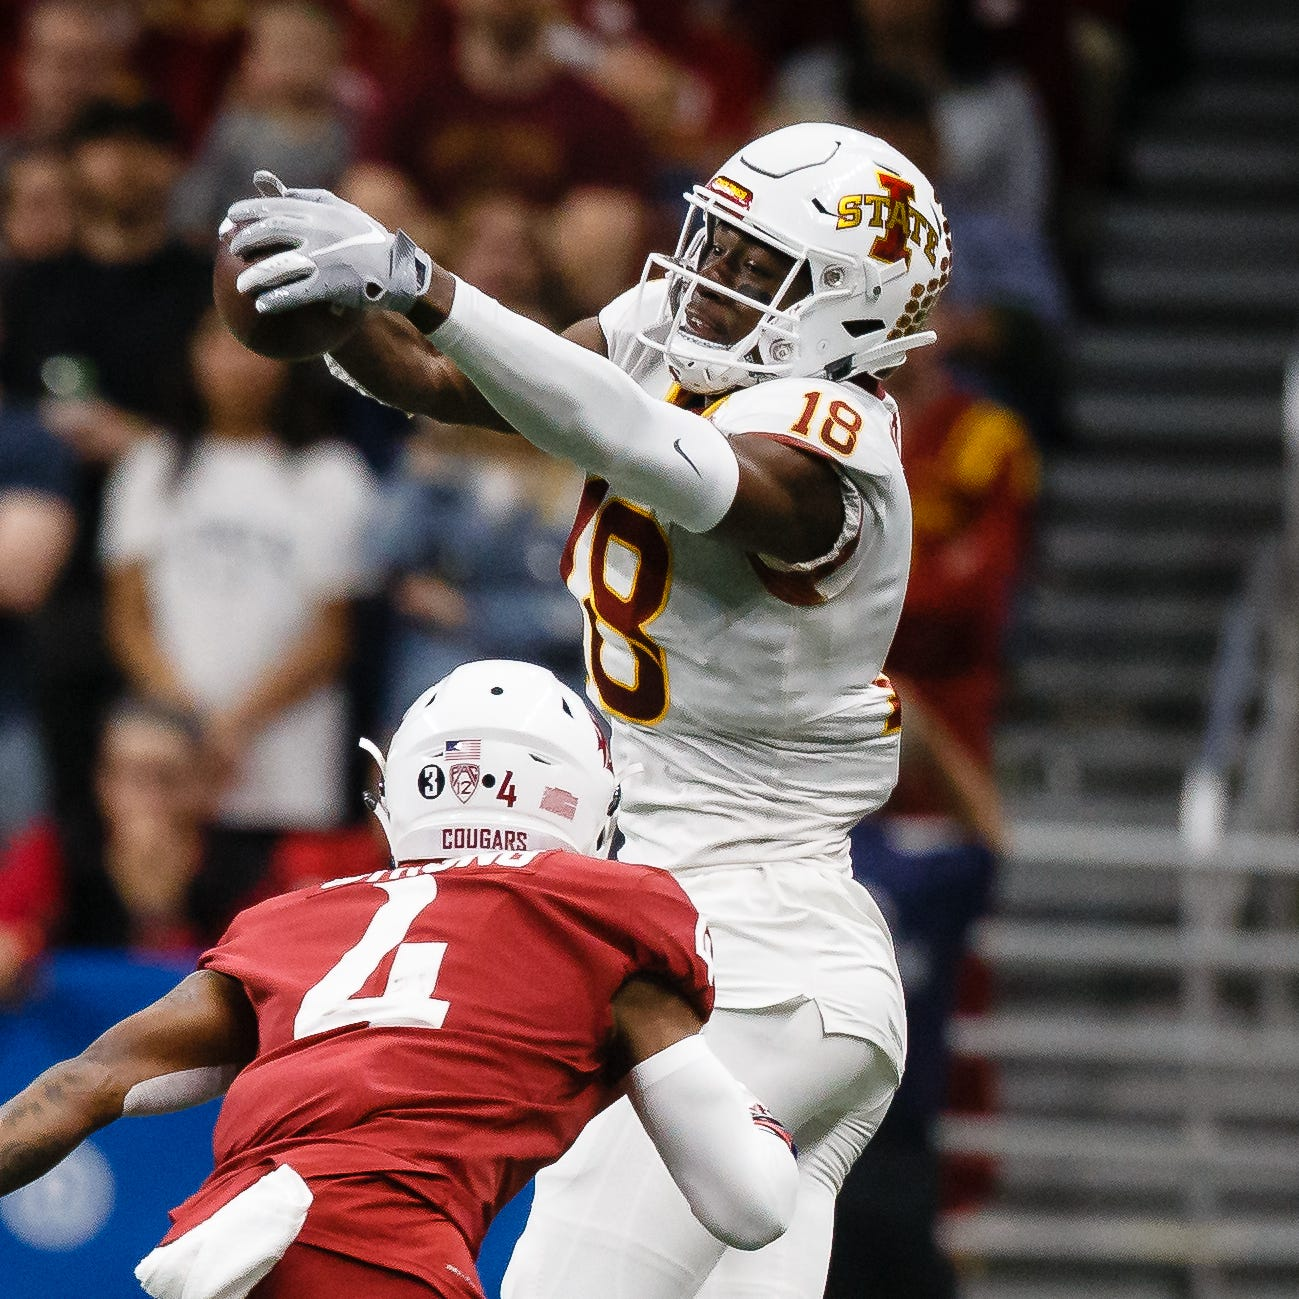 Iowa State's Hakeem Butler says his NFL Draft decision will have to wait a bit